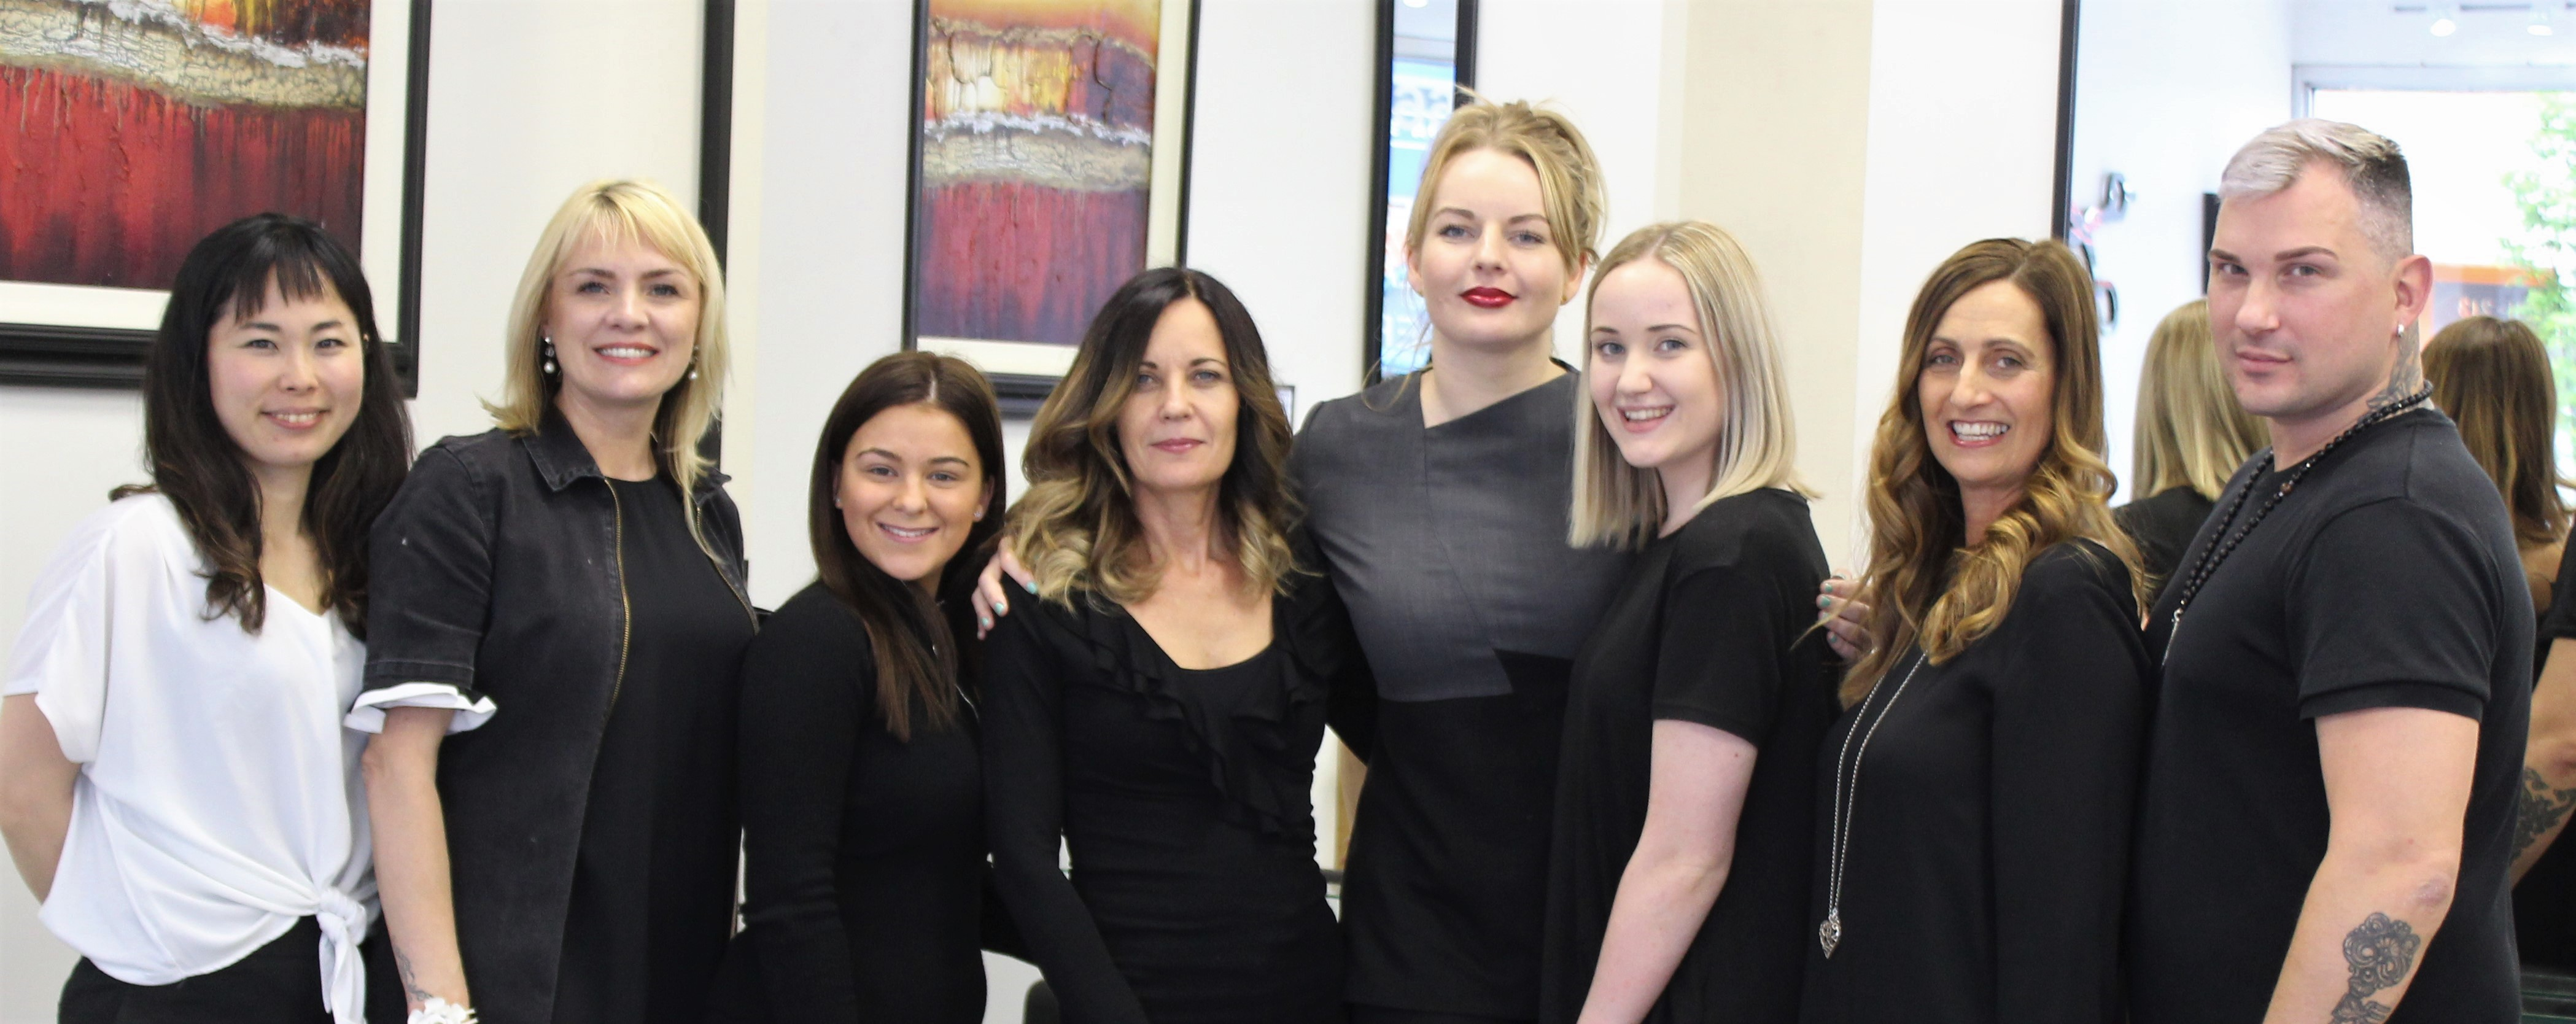 Unique Hair and Beauty Team 2019